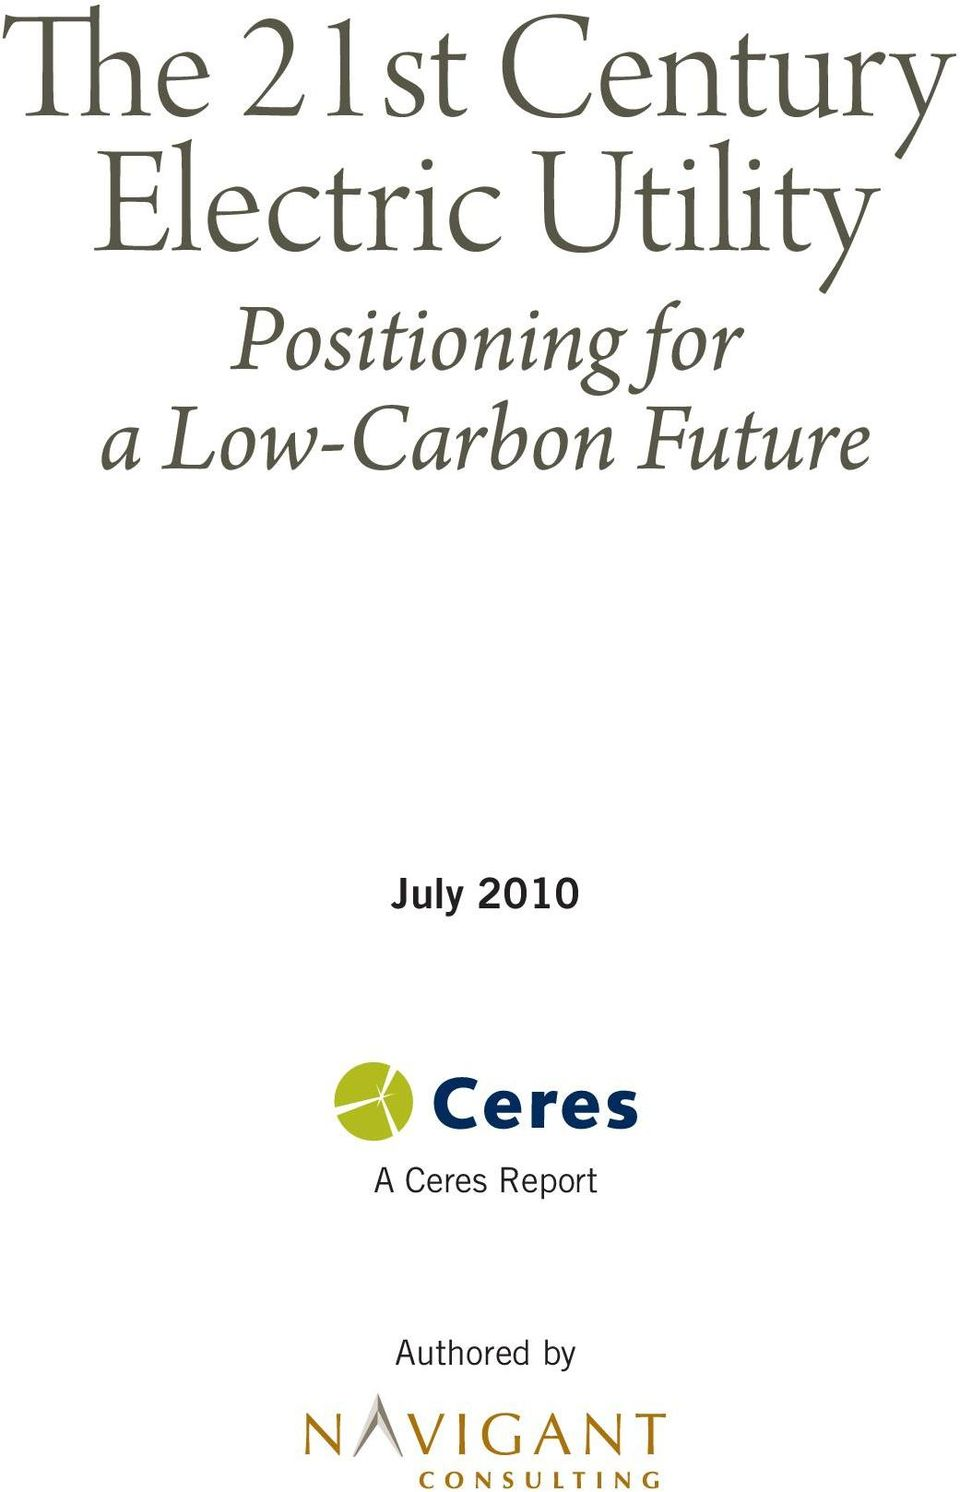 Low-Carbon Future July